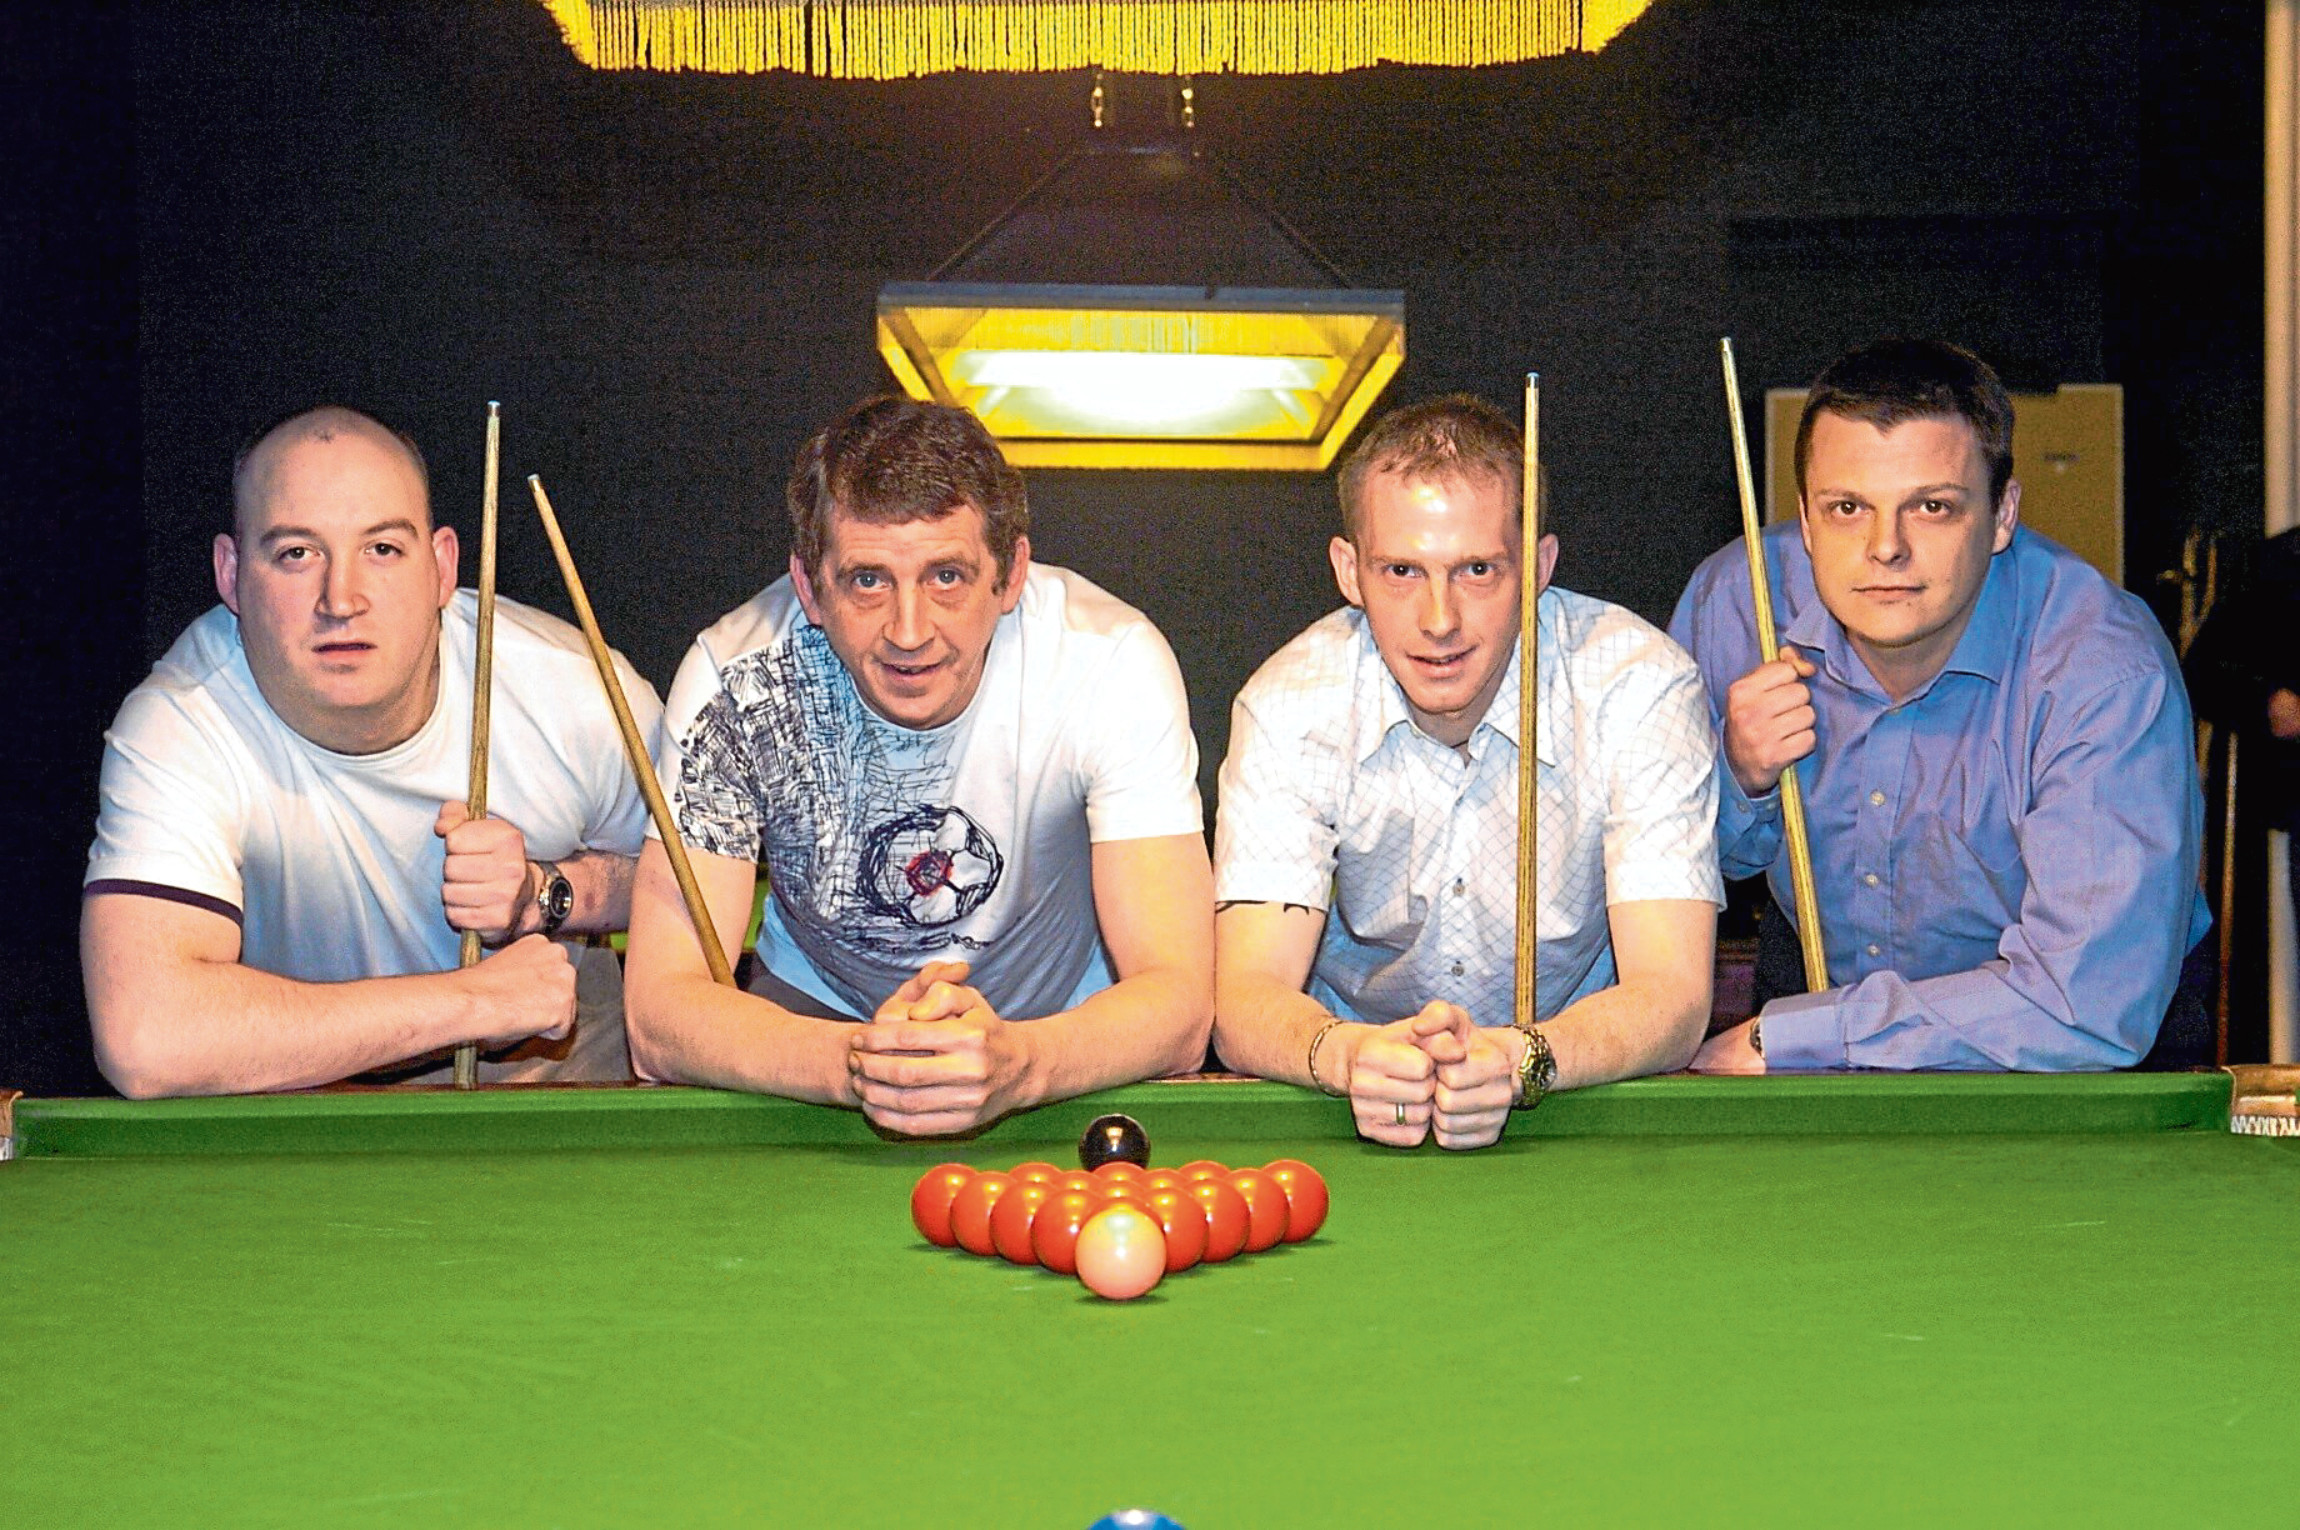 Derek Hearns, second left, pictured with, from left, Mark Oaten, Kevin Pirie, and Rene Taticek, was a seven-times North of Scotland champion.